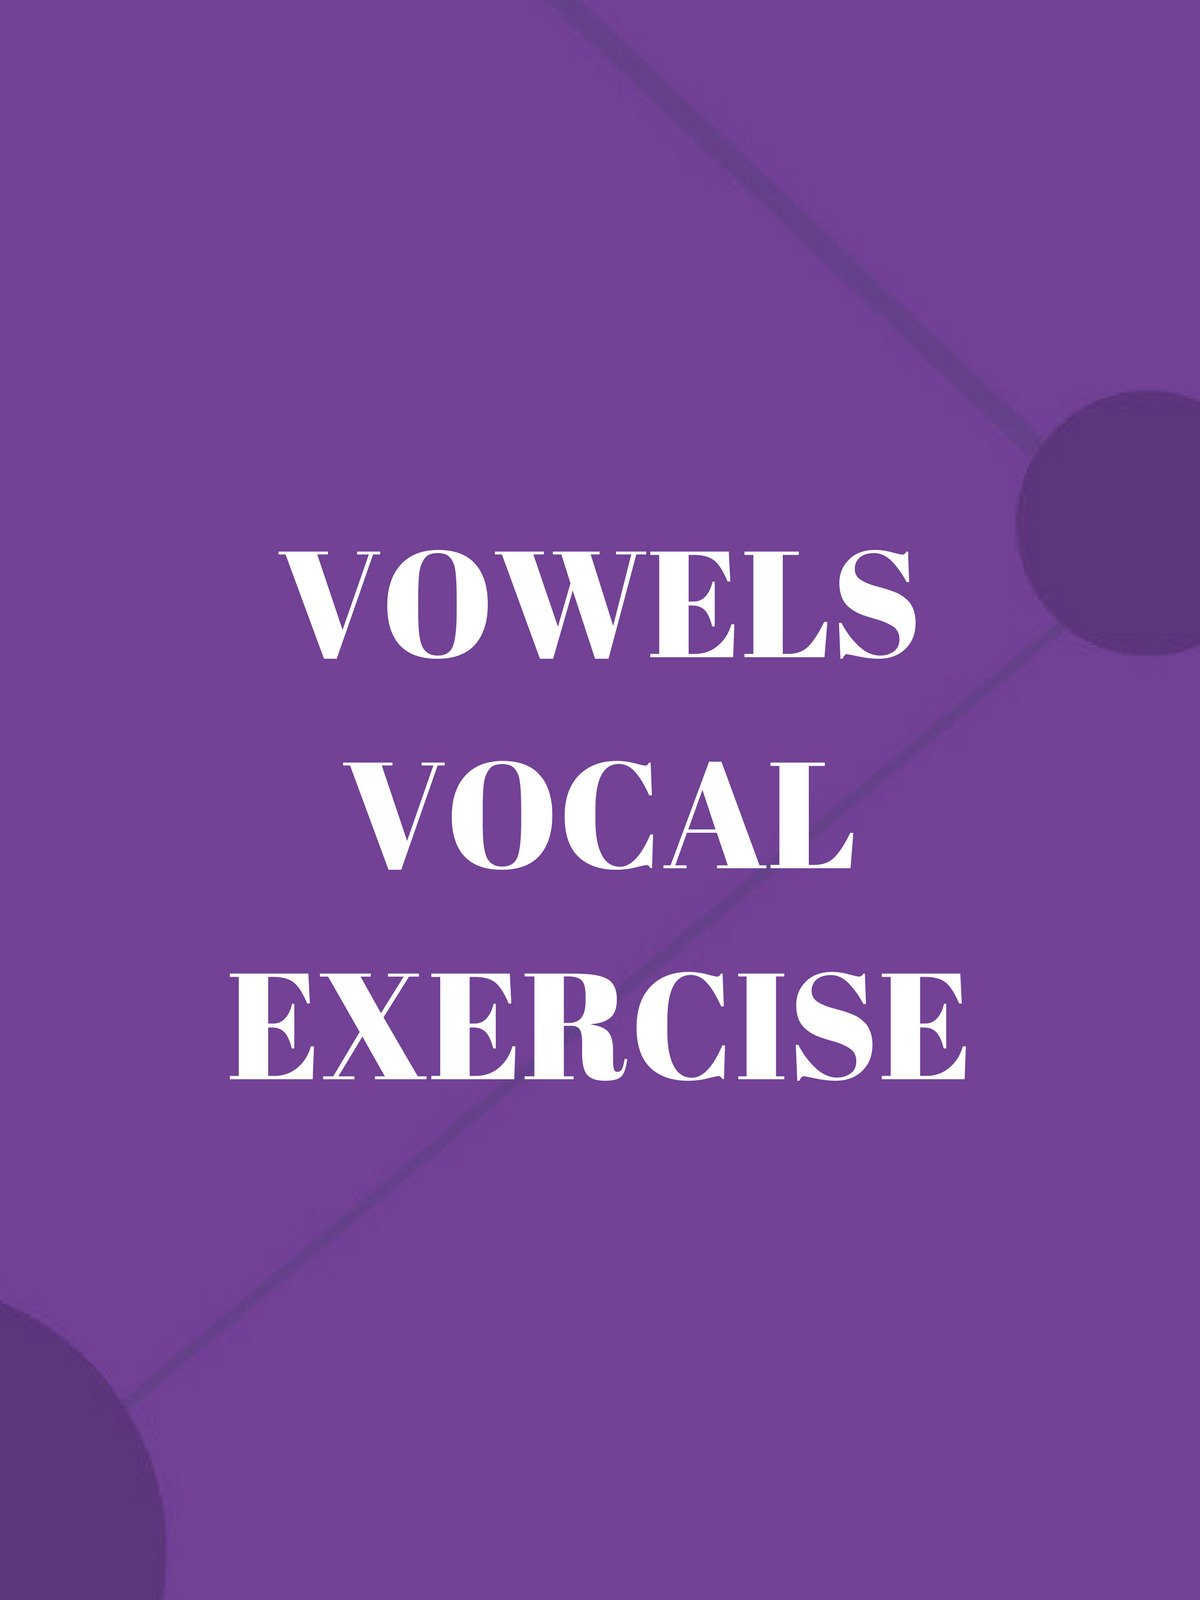 Vowels Vocal Exercise